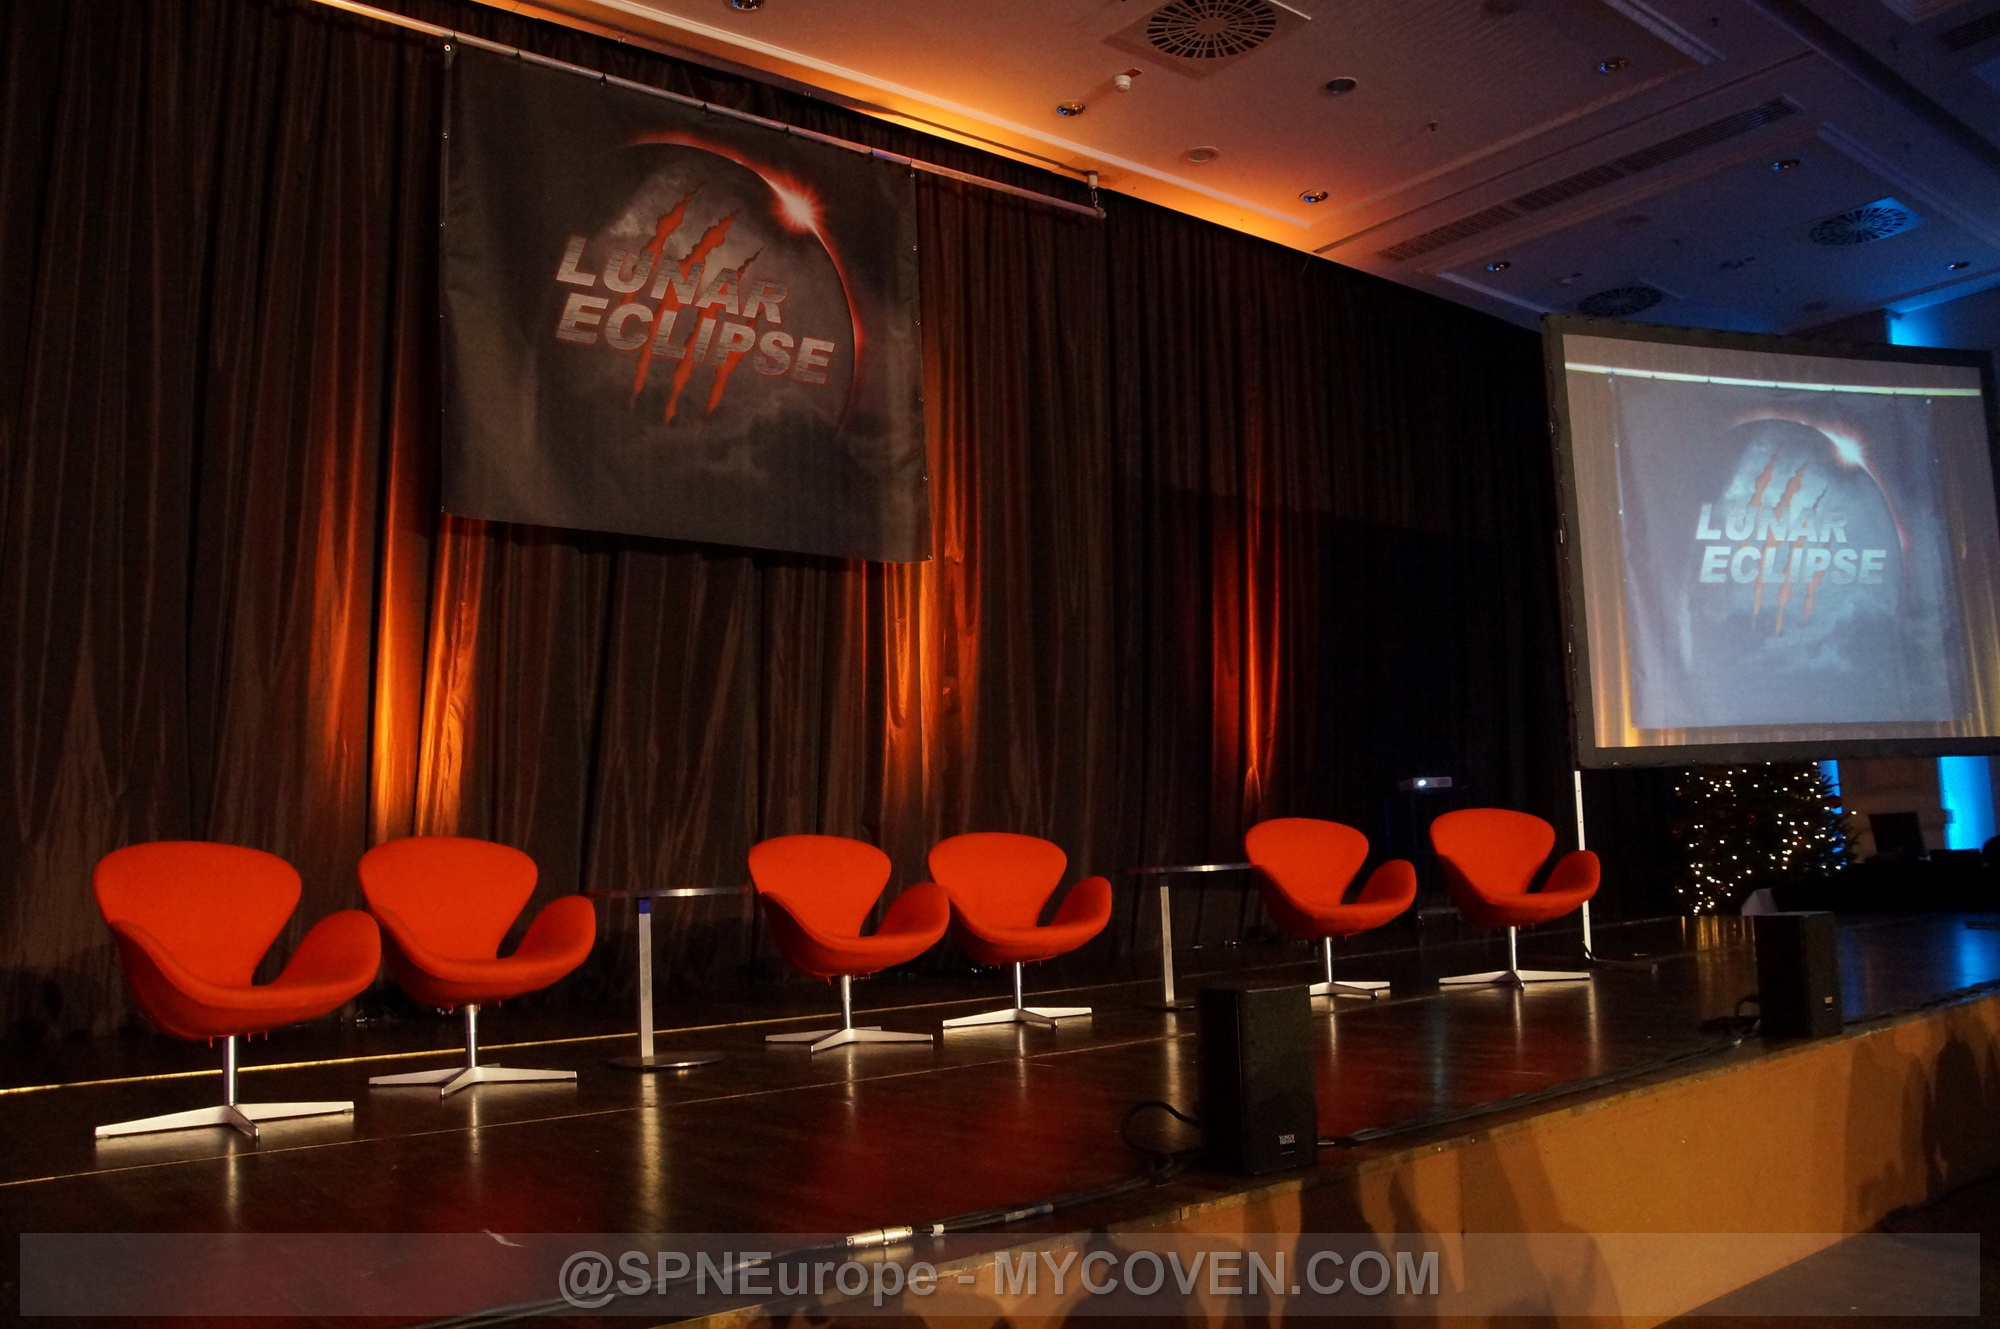 Entertainment Events - Conventions with Heart and Soul